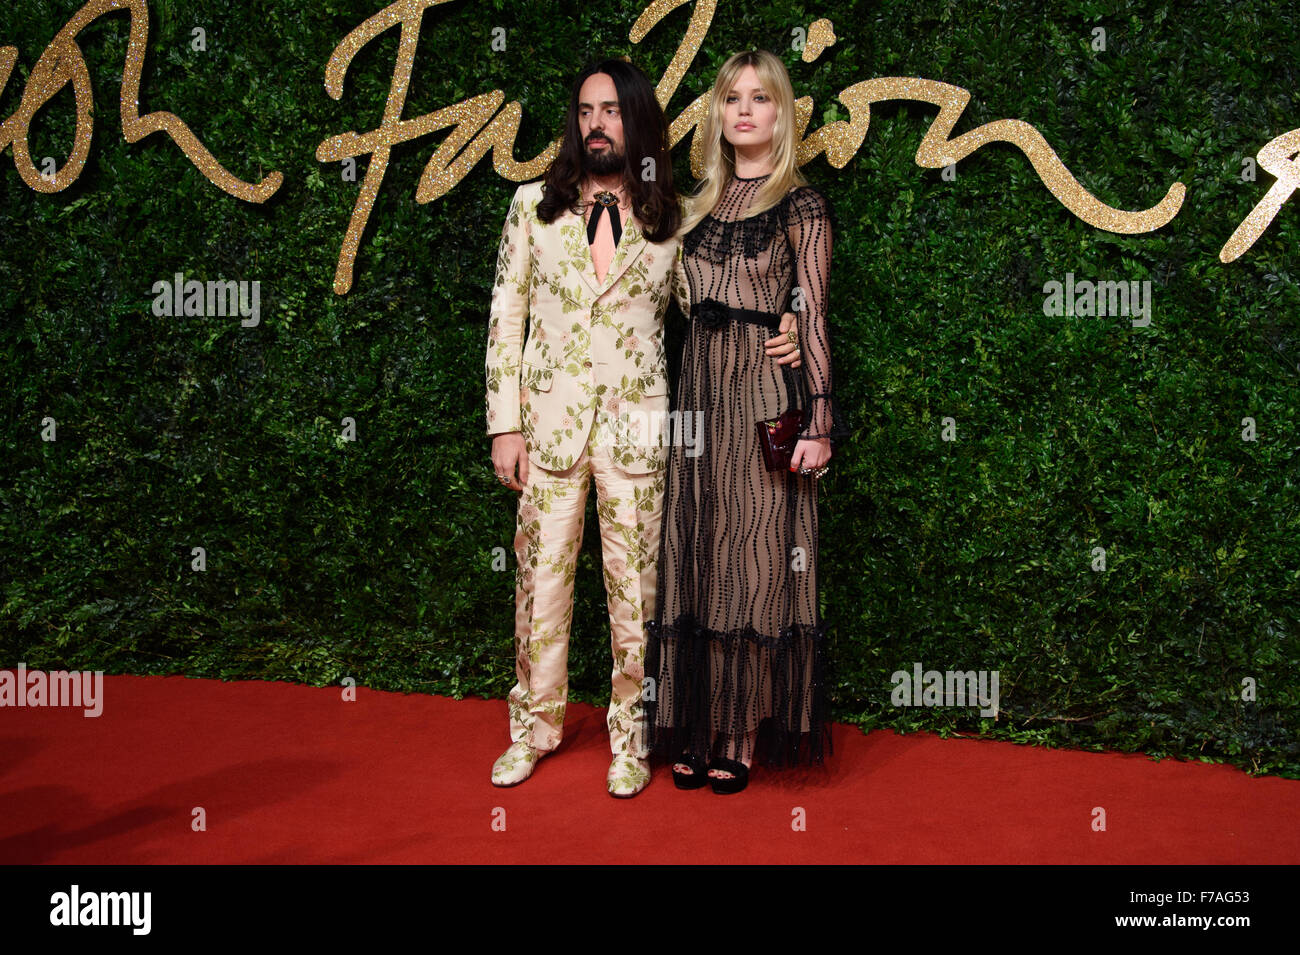 Alessandro Michele and Georgia May Jagger at the British Fashion Awards 2015 in London - Stock Image